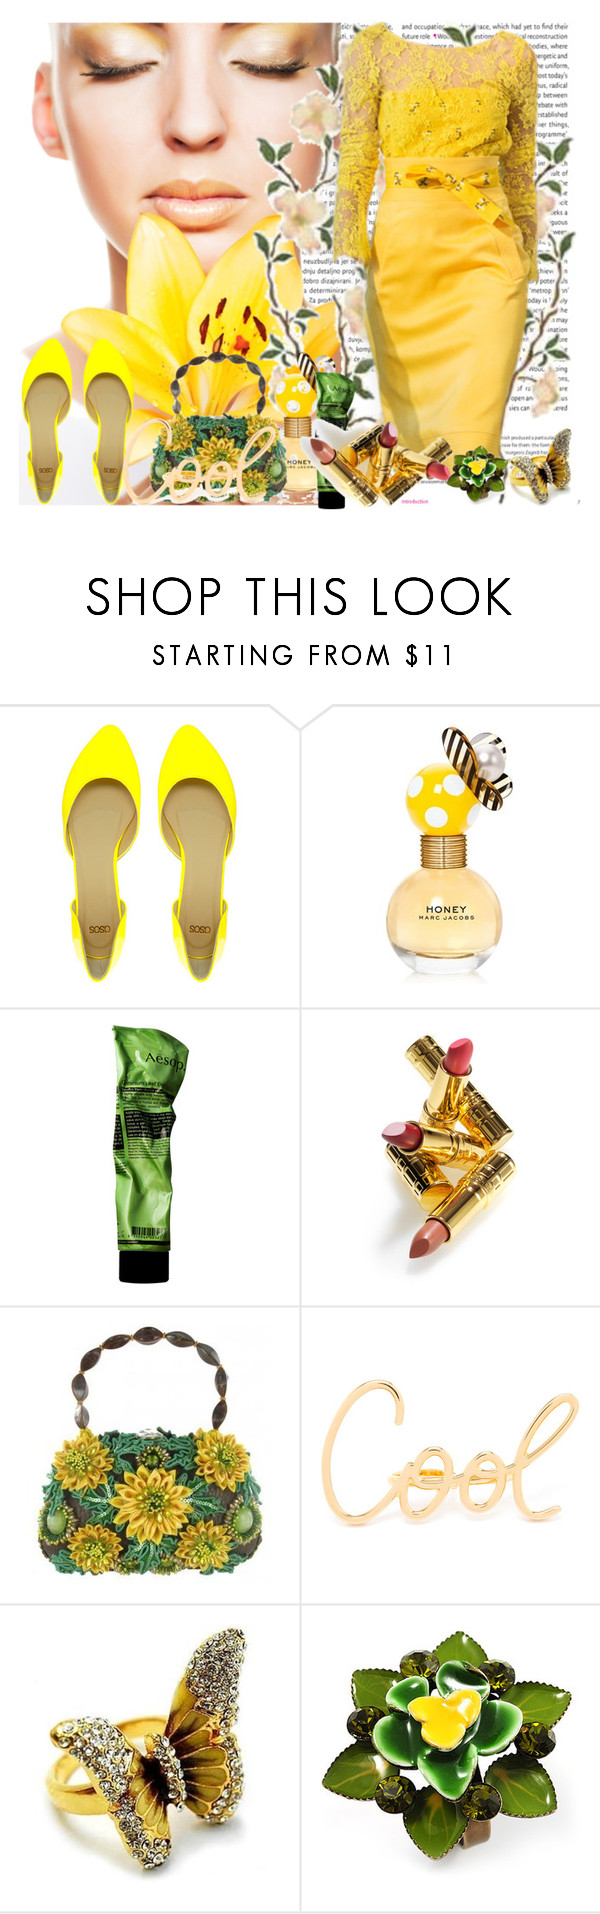 """Untitled #818"" by strawberrybubble ❤ liked on Polyvore featuring Oris, Oscar de la Renta, ASOS, Marc Jacobs, Aesop, Elizabeth Arden, Mary Frances Accessories, Lanvin, Fantasy Jewelry Box and Avalaya"